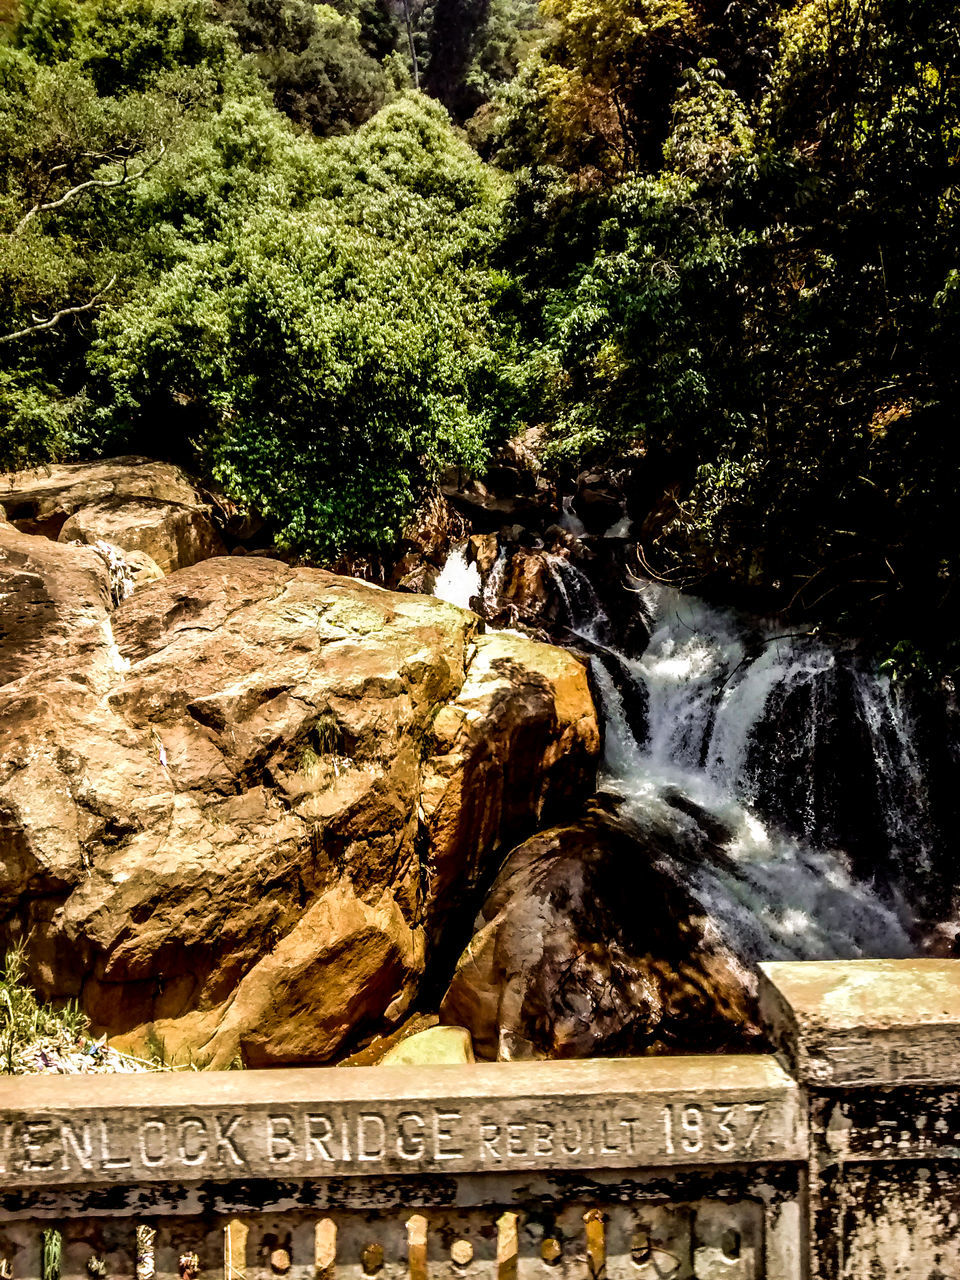 water, rock formation, rock - object, tree, text, nature, day, beauty in nature, no people, growth, scenics, outdoors, motion, cliff, waterfall, travel destinations